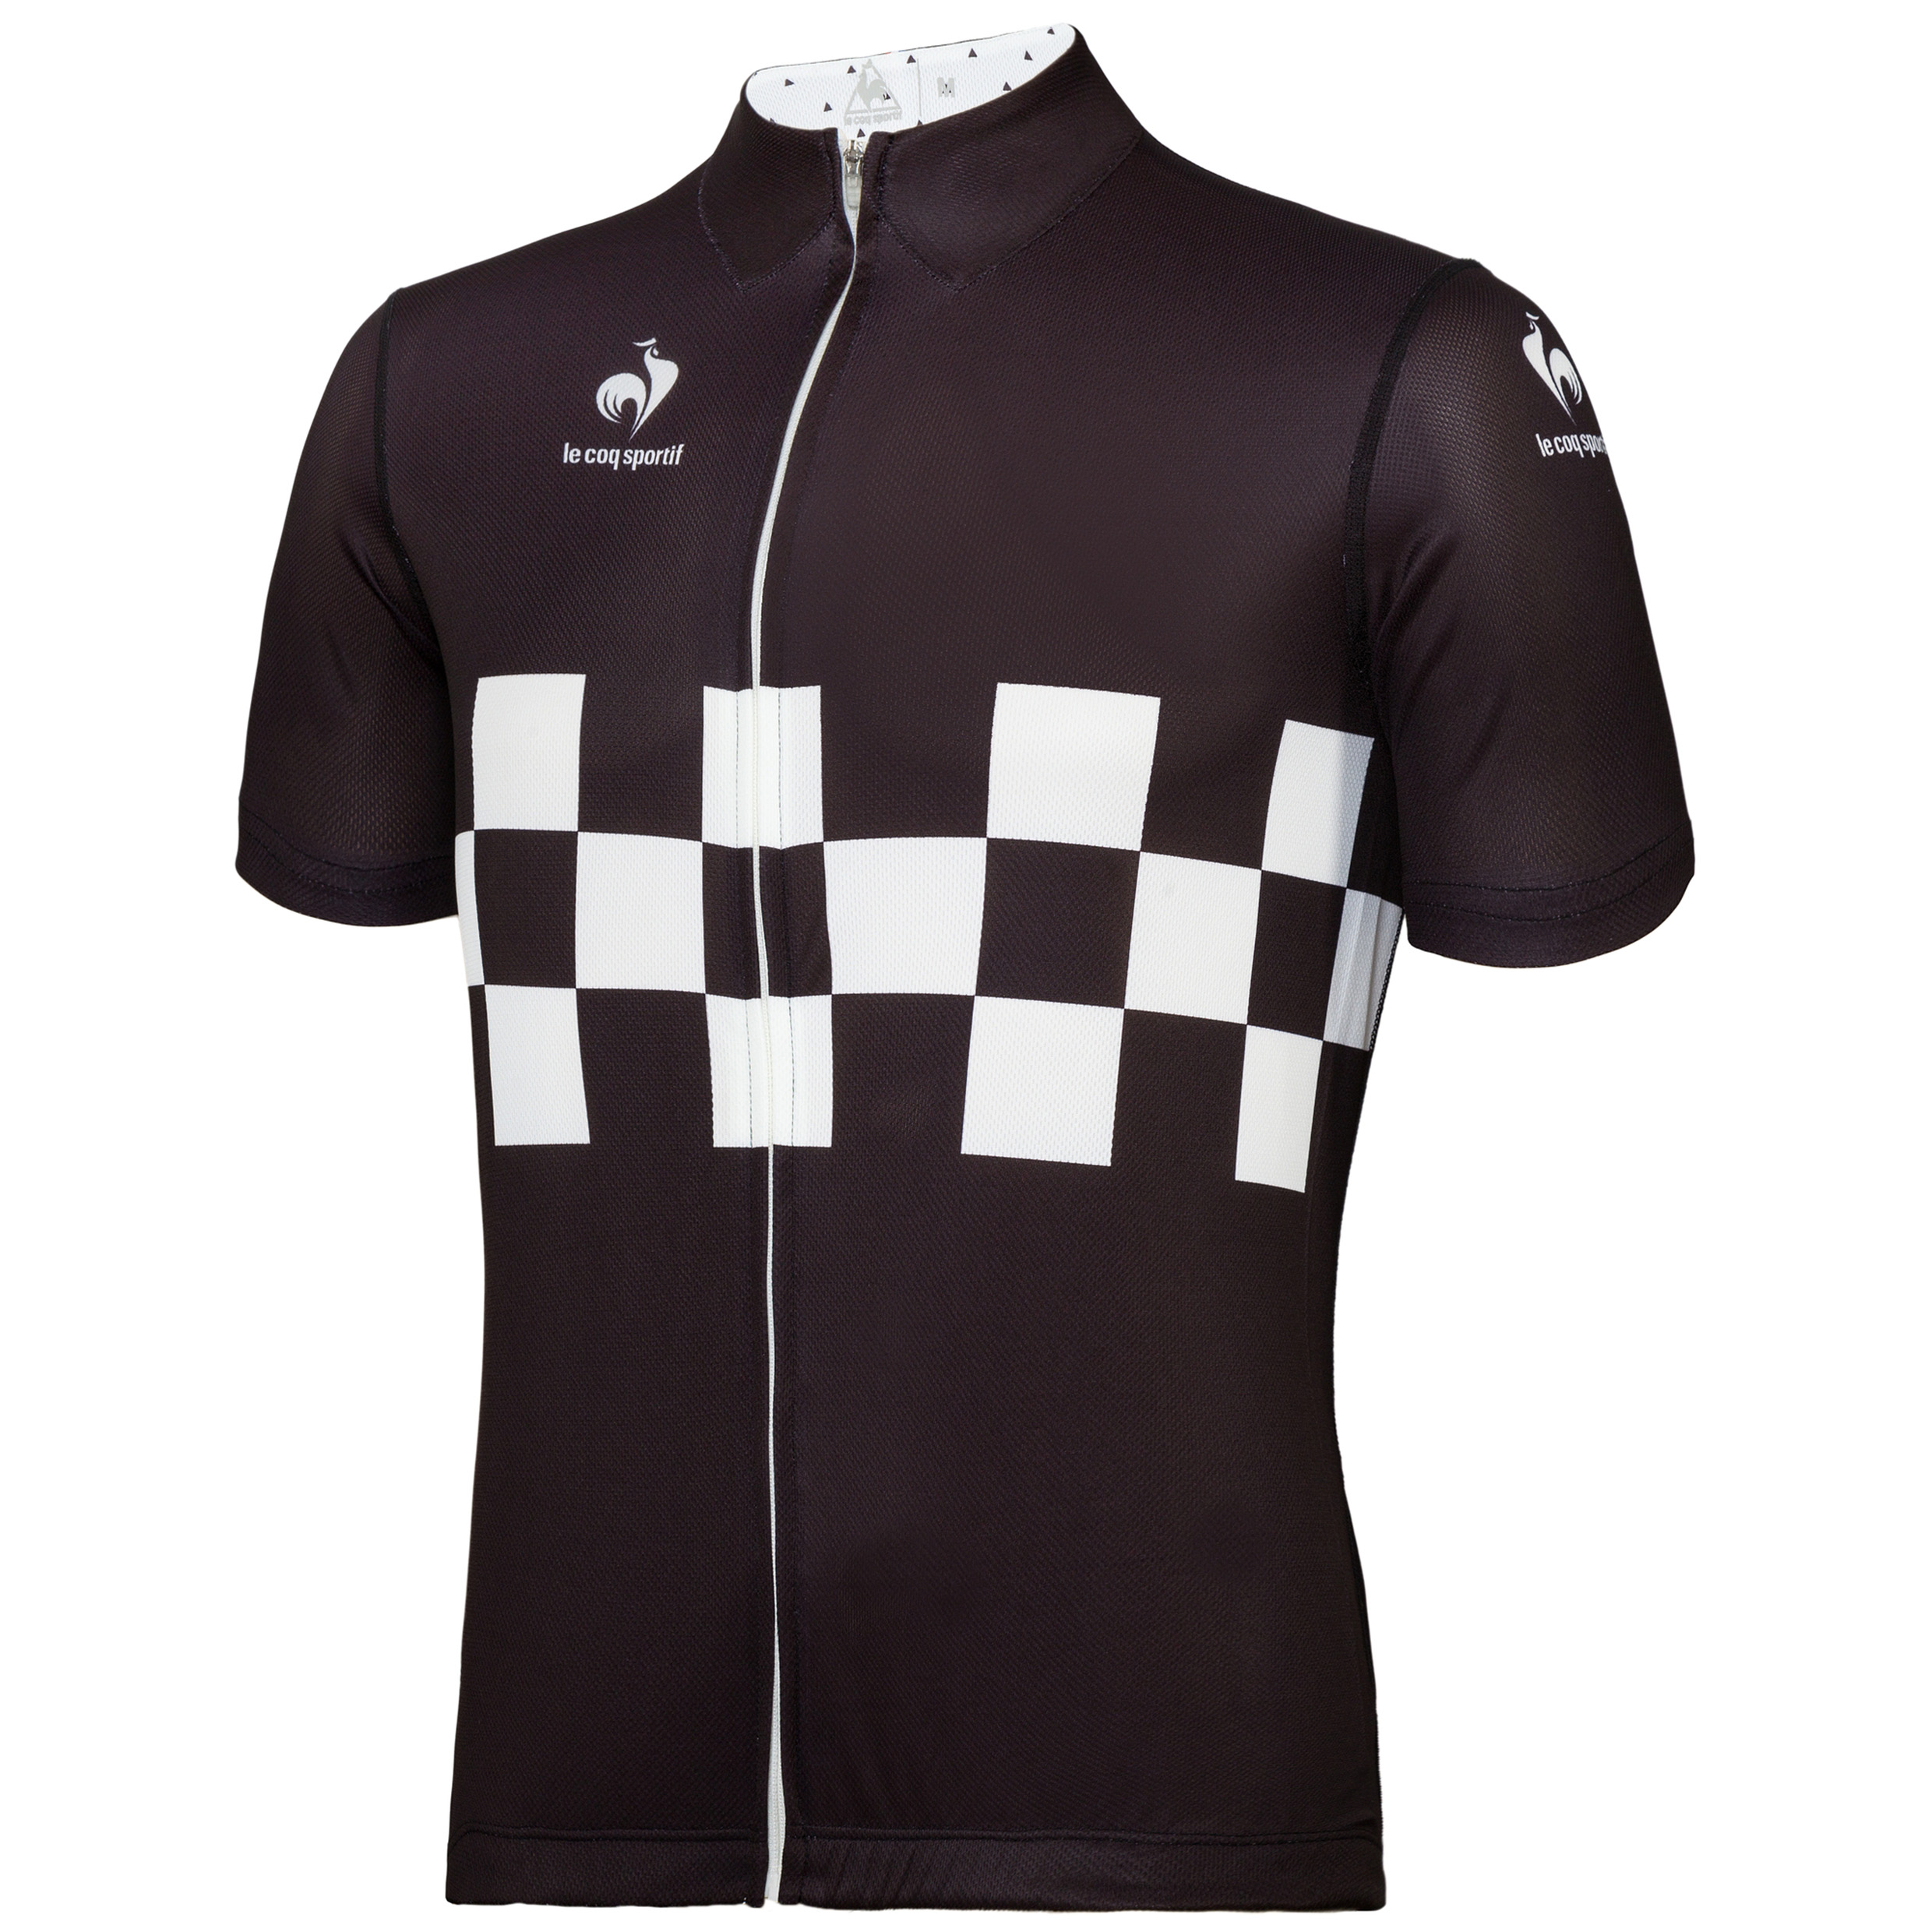 Le Coq Sportif Performance Checkered Jersey - Black